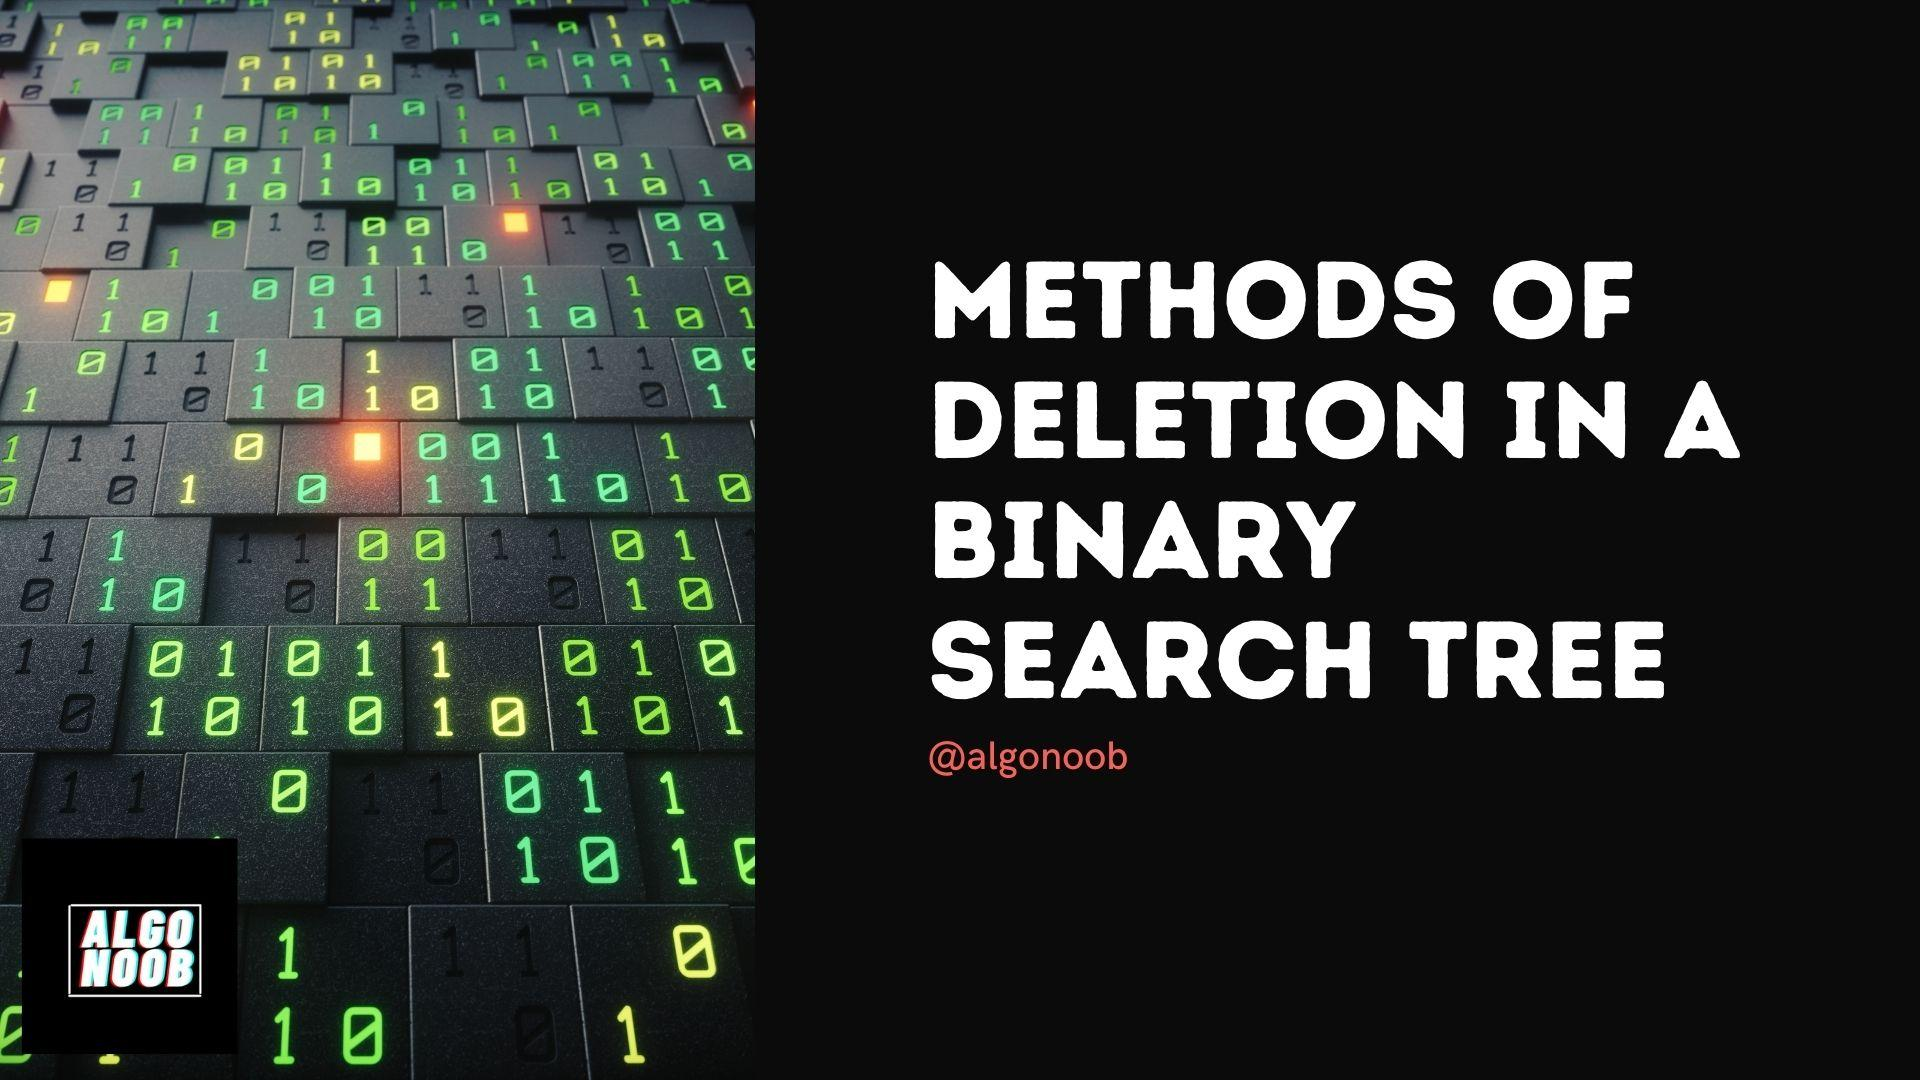 Methods of deletion in a Binary Search Tree